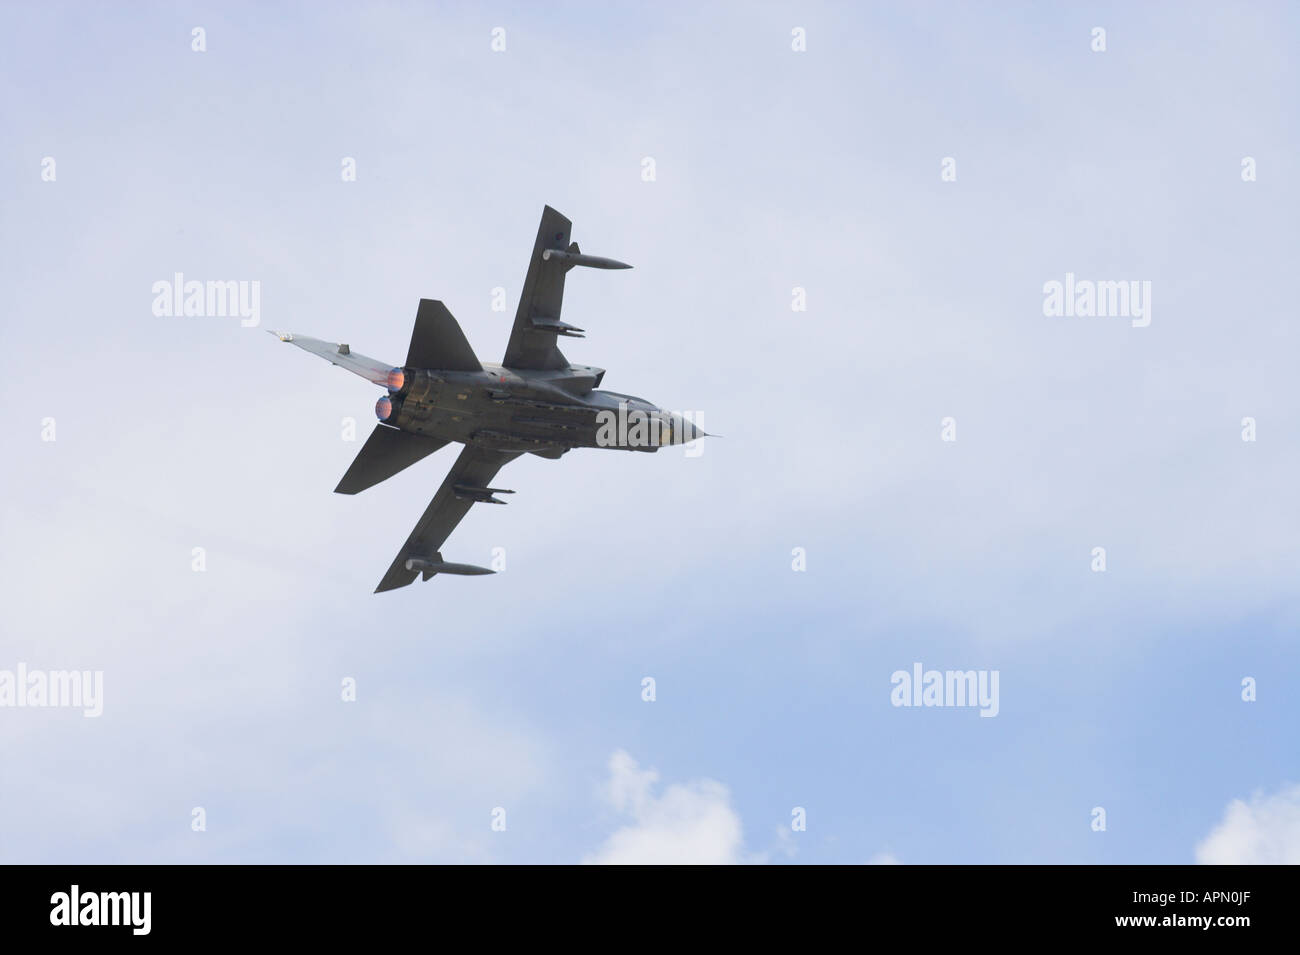 Tornado G4 with afterburn turning and climbing away Stock Photo